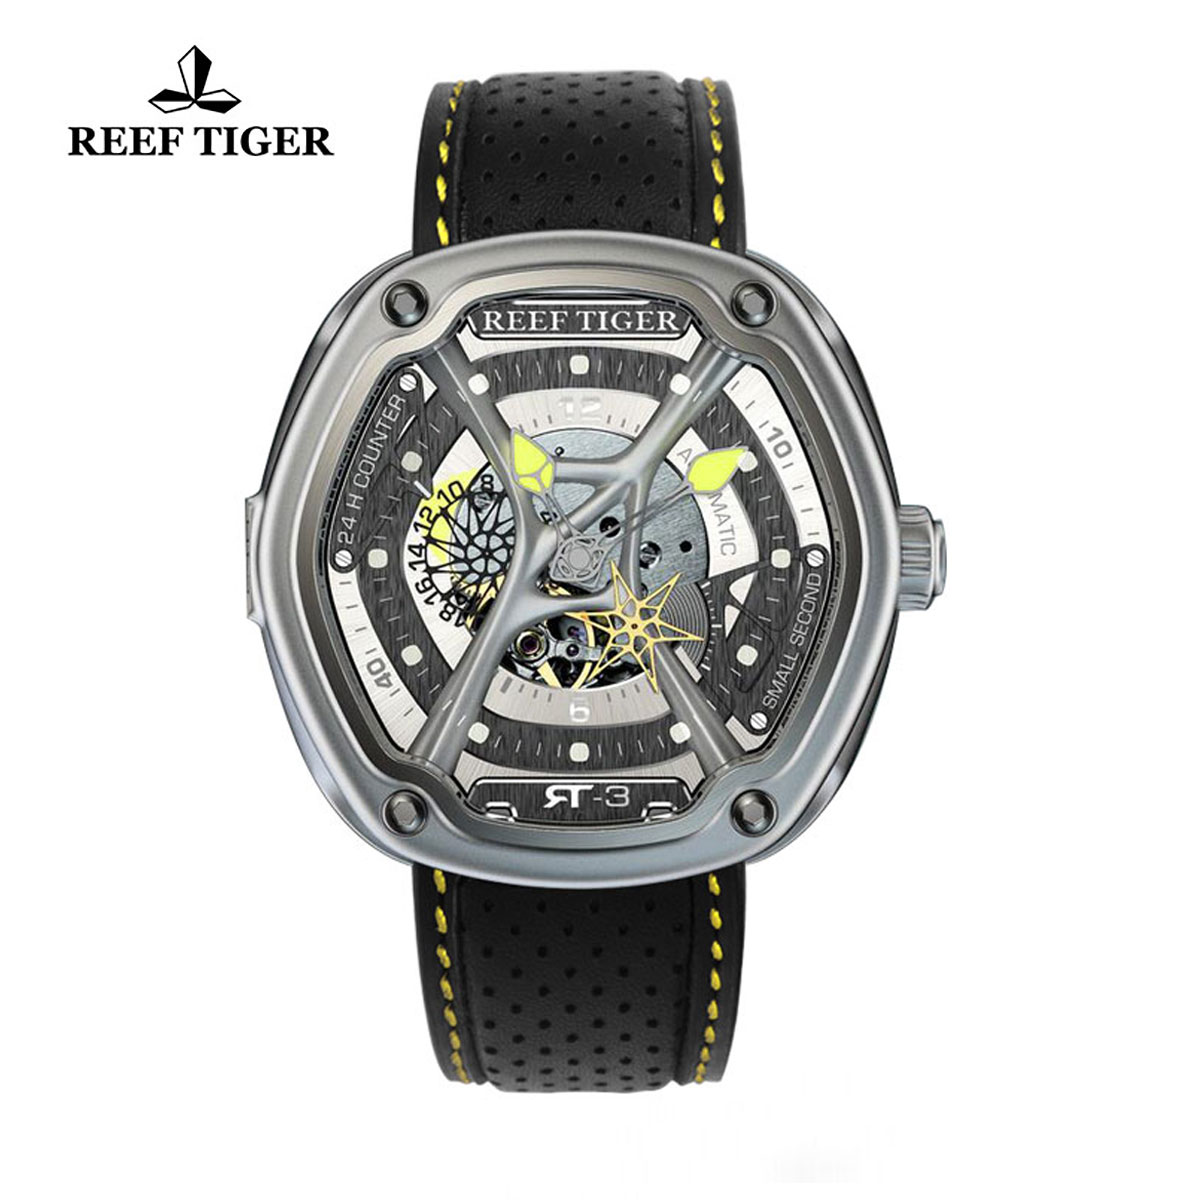 Reef Tiger Gaia's Light Sport Watches Automatic Watch Steel Case Leather Strap RGA90S7-YSBL